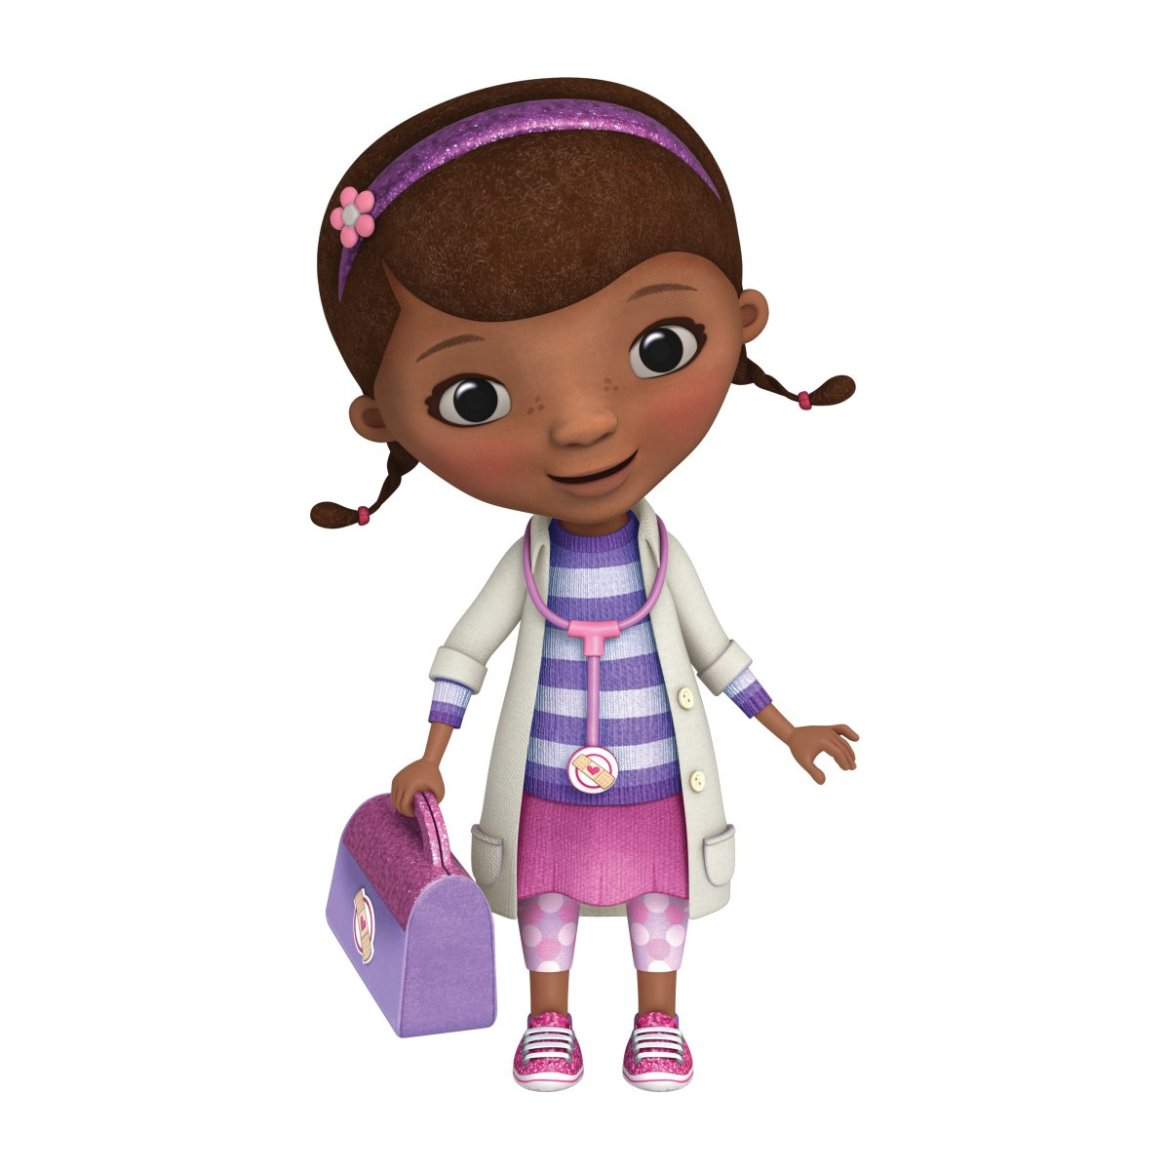 Doc McStuffins Possibly Coming to Hollywood Studios